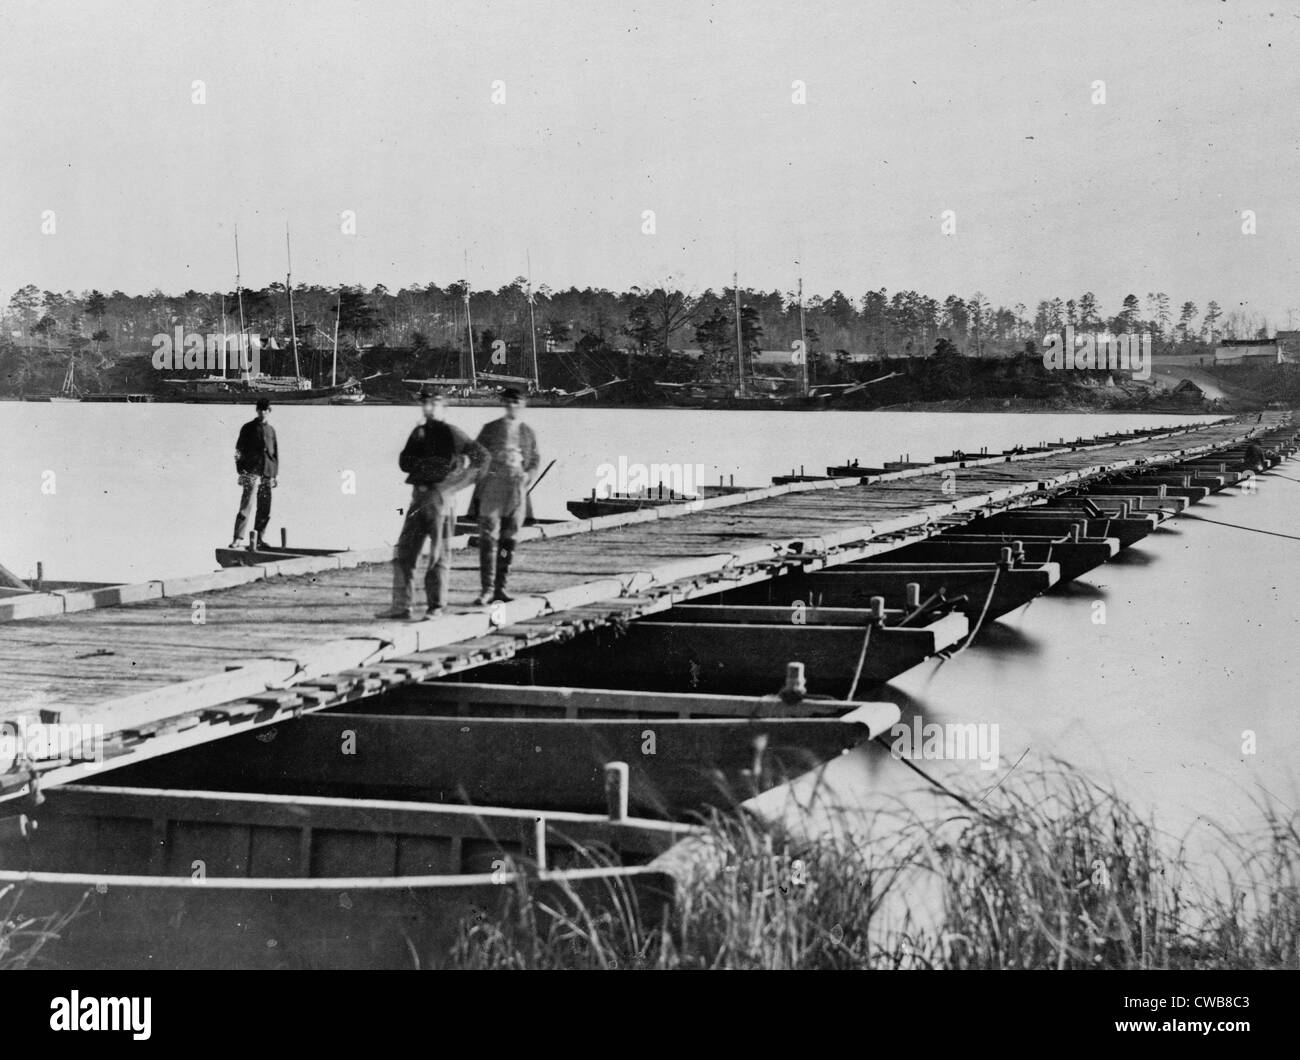 The Civil War. Pontoon bridge across the Appomattox River. 1860s - Stock Image